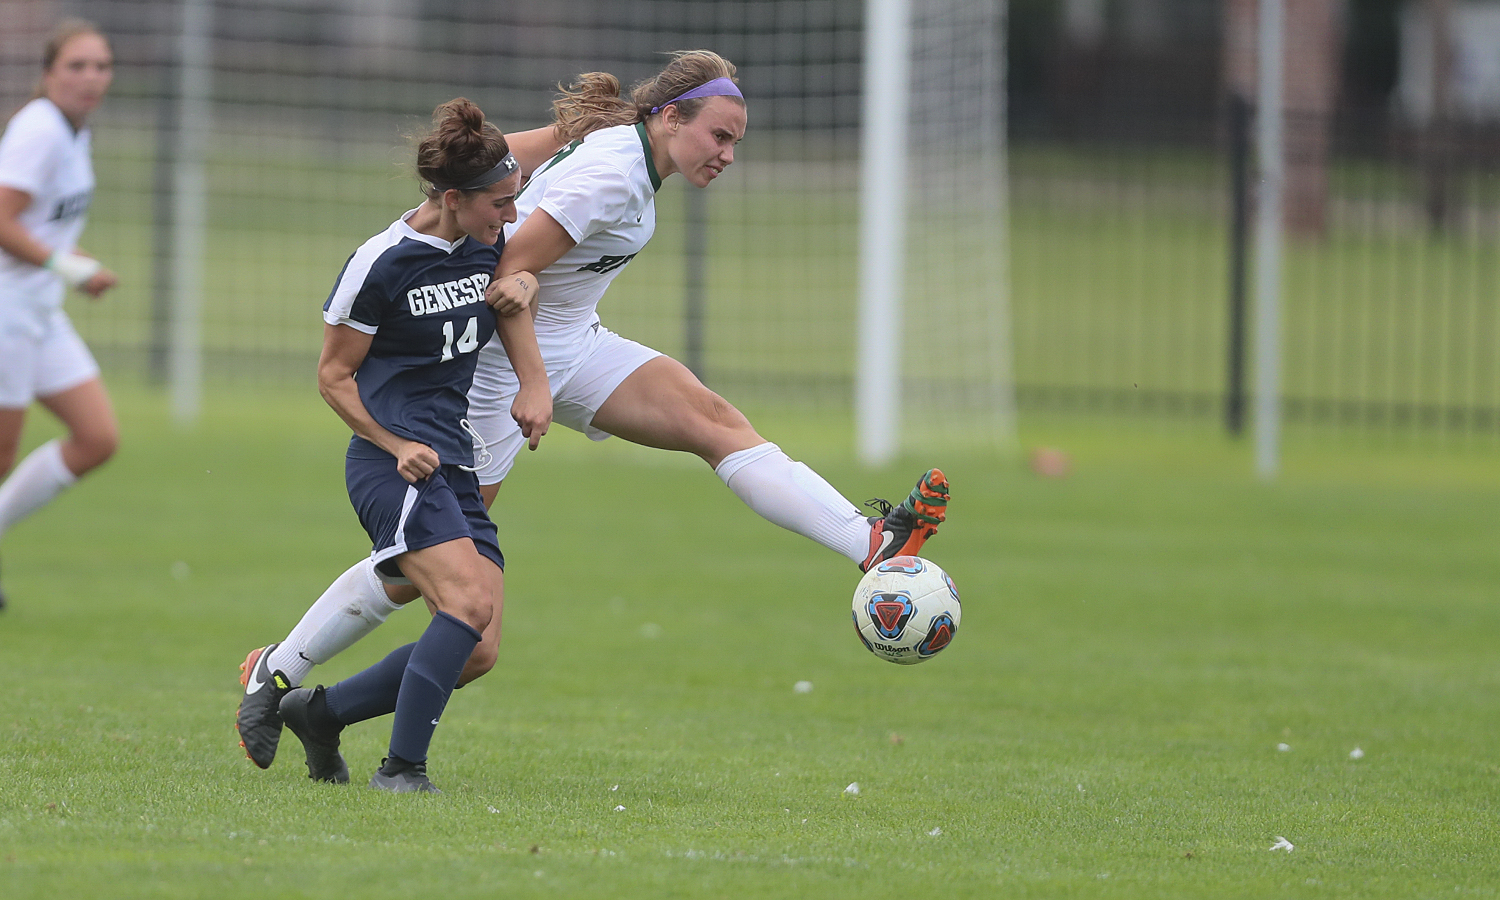 Eileen Rath 'X makes a pass during William Smith's 3-0 win over SUNY Geneseo on Wednesday.